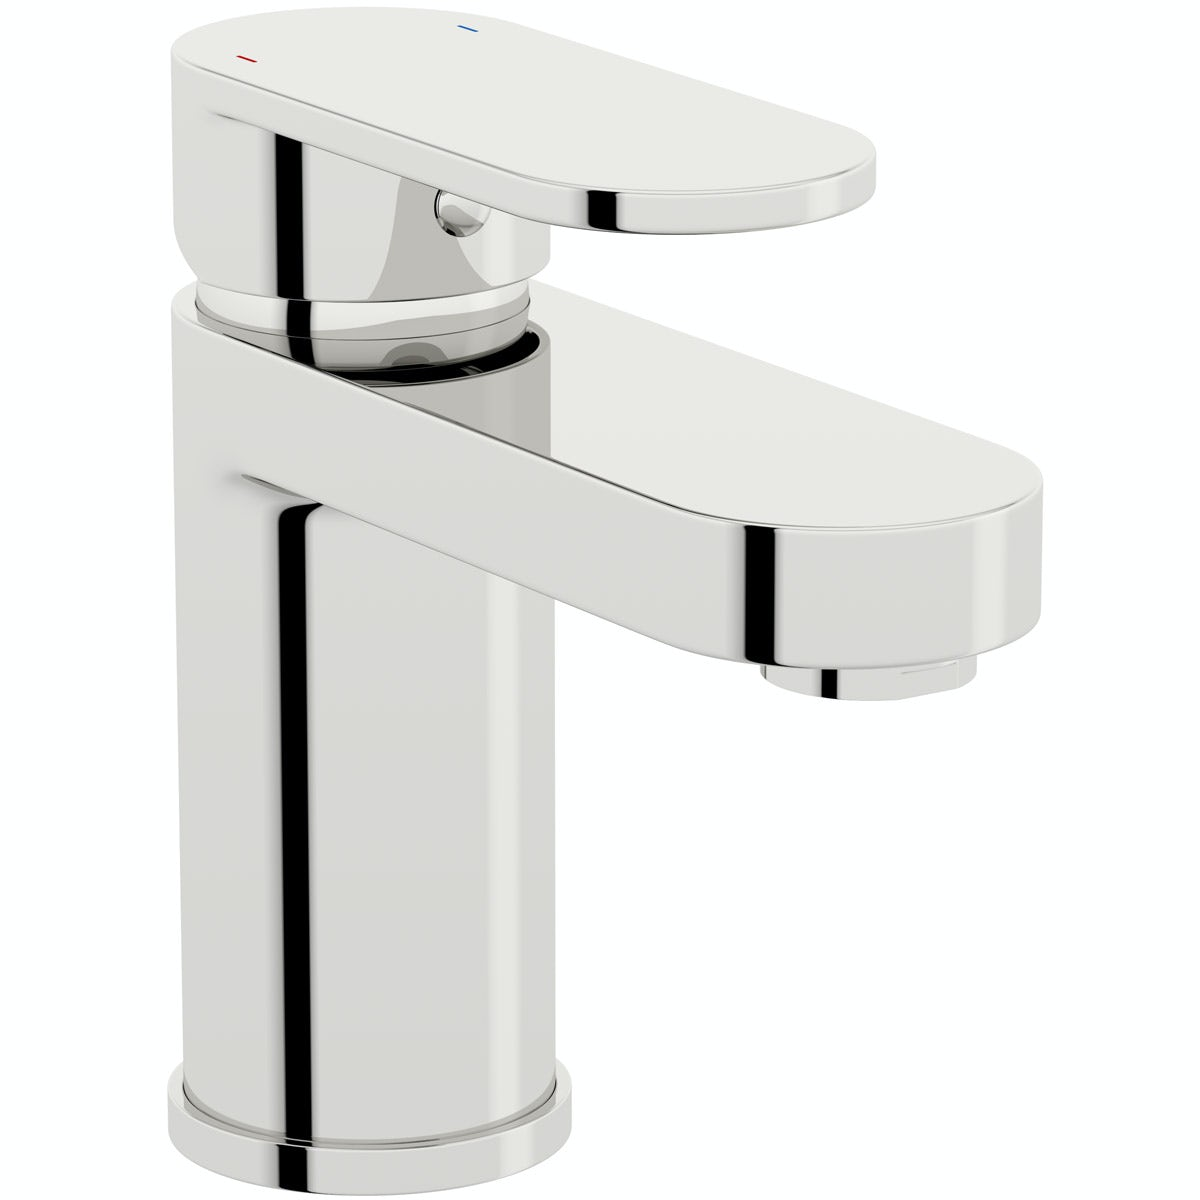 Kirke Curve basin mixer tap with click clack waste and cold start